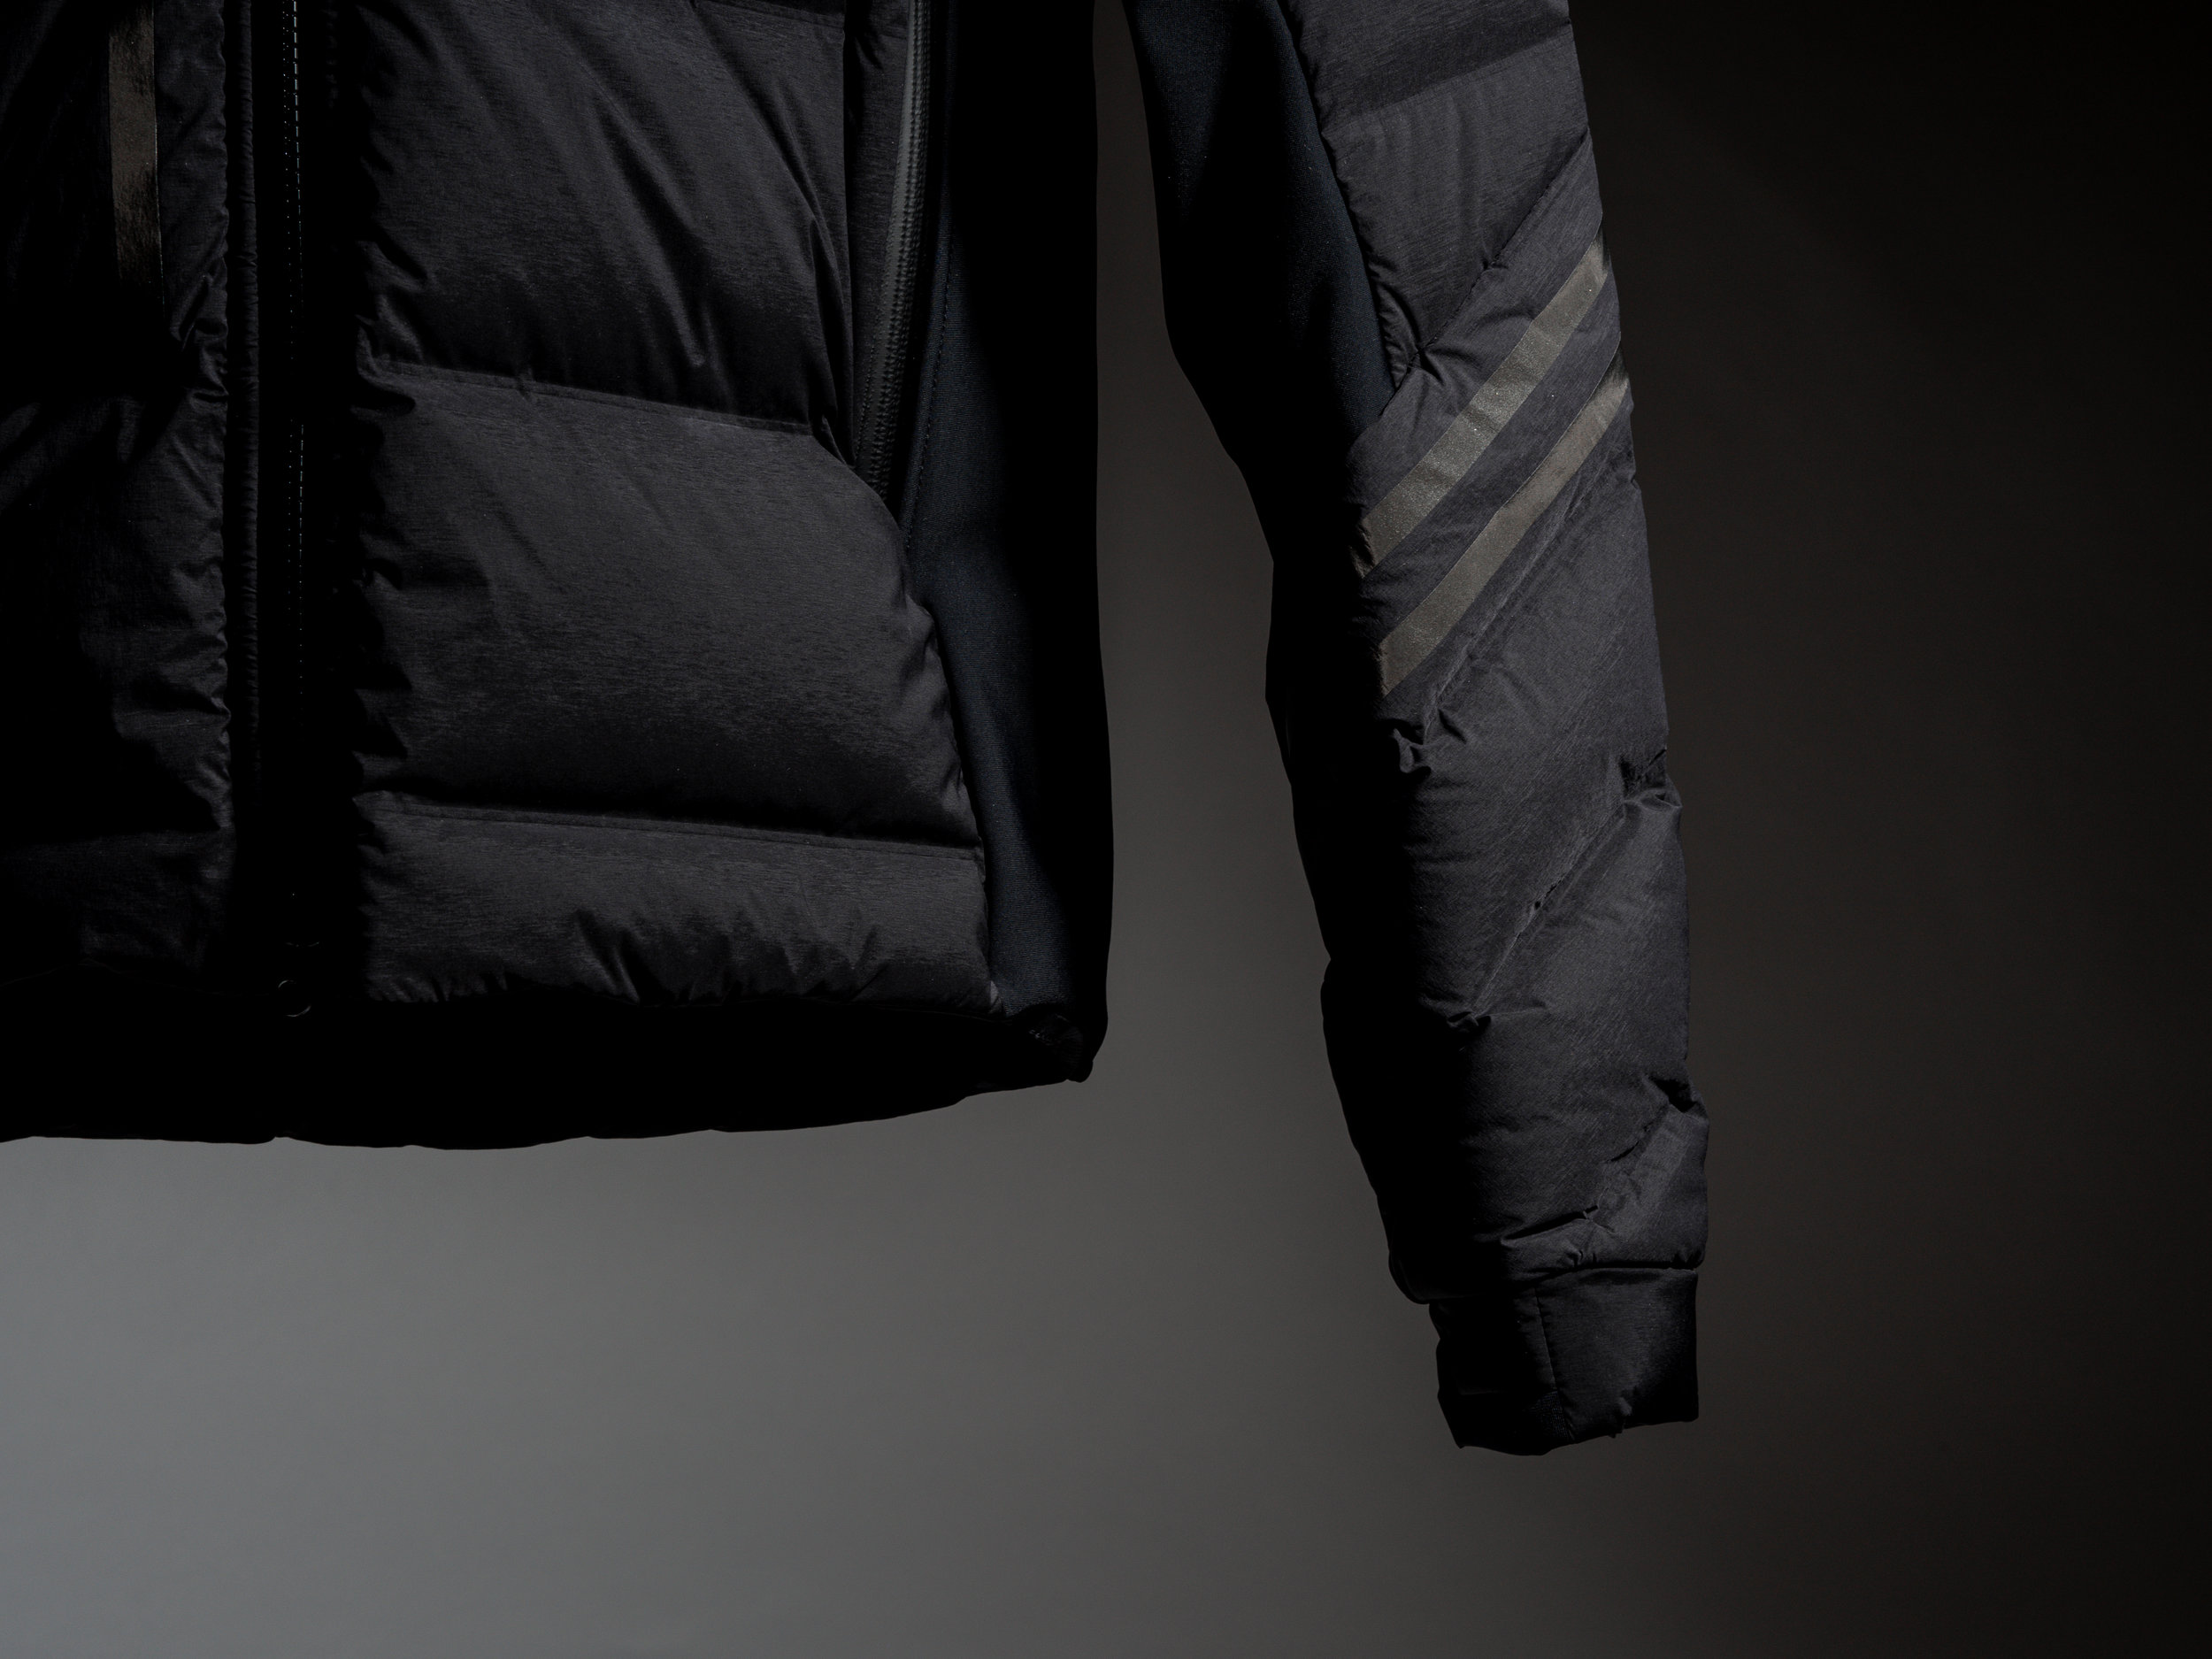 Canada Goose Hybridge CW Jacket - The Hybridge CW Jacket is filled with a lightweight down that seamlessly transitions its wearer between the unpredictable fall and winter months. It features stretch paneling on the shoulders, underarms, and side seams for improved comfort and mobility, as well as a stow hood and down fill in the collar for additional protection against the elements. It is finished with stylized reflective taping, and a Black Label patch. Canada Goose's down insulated outerwear is all Made in Canada.